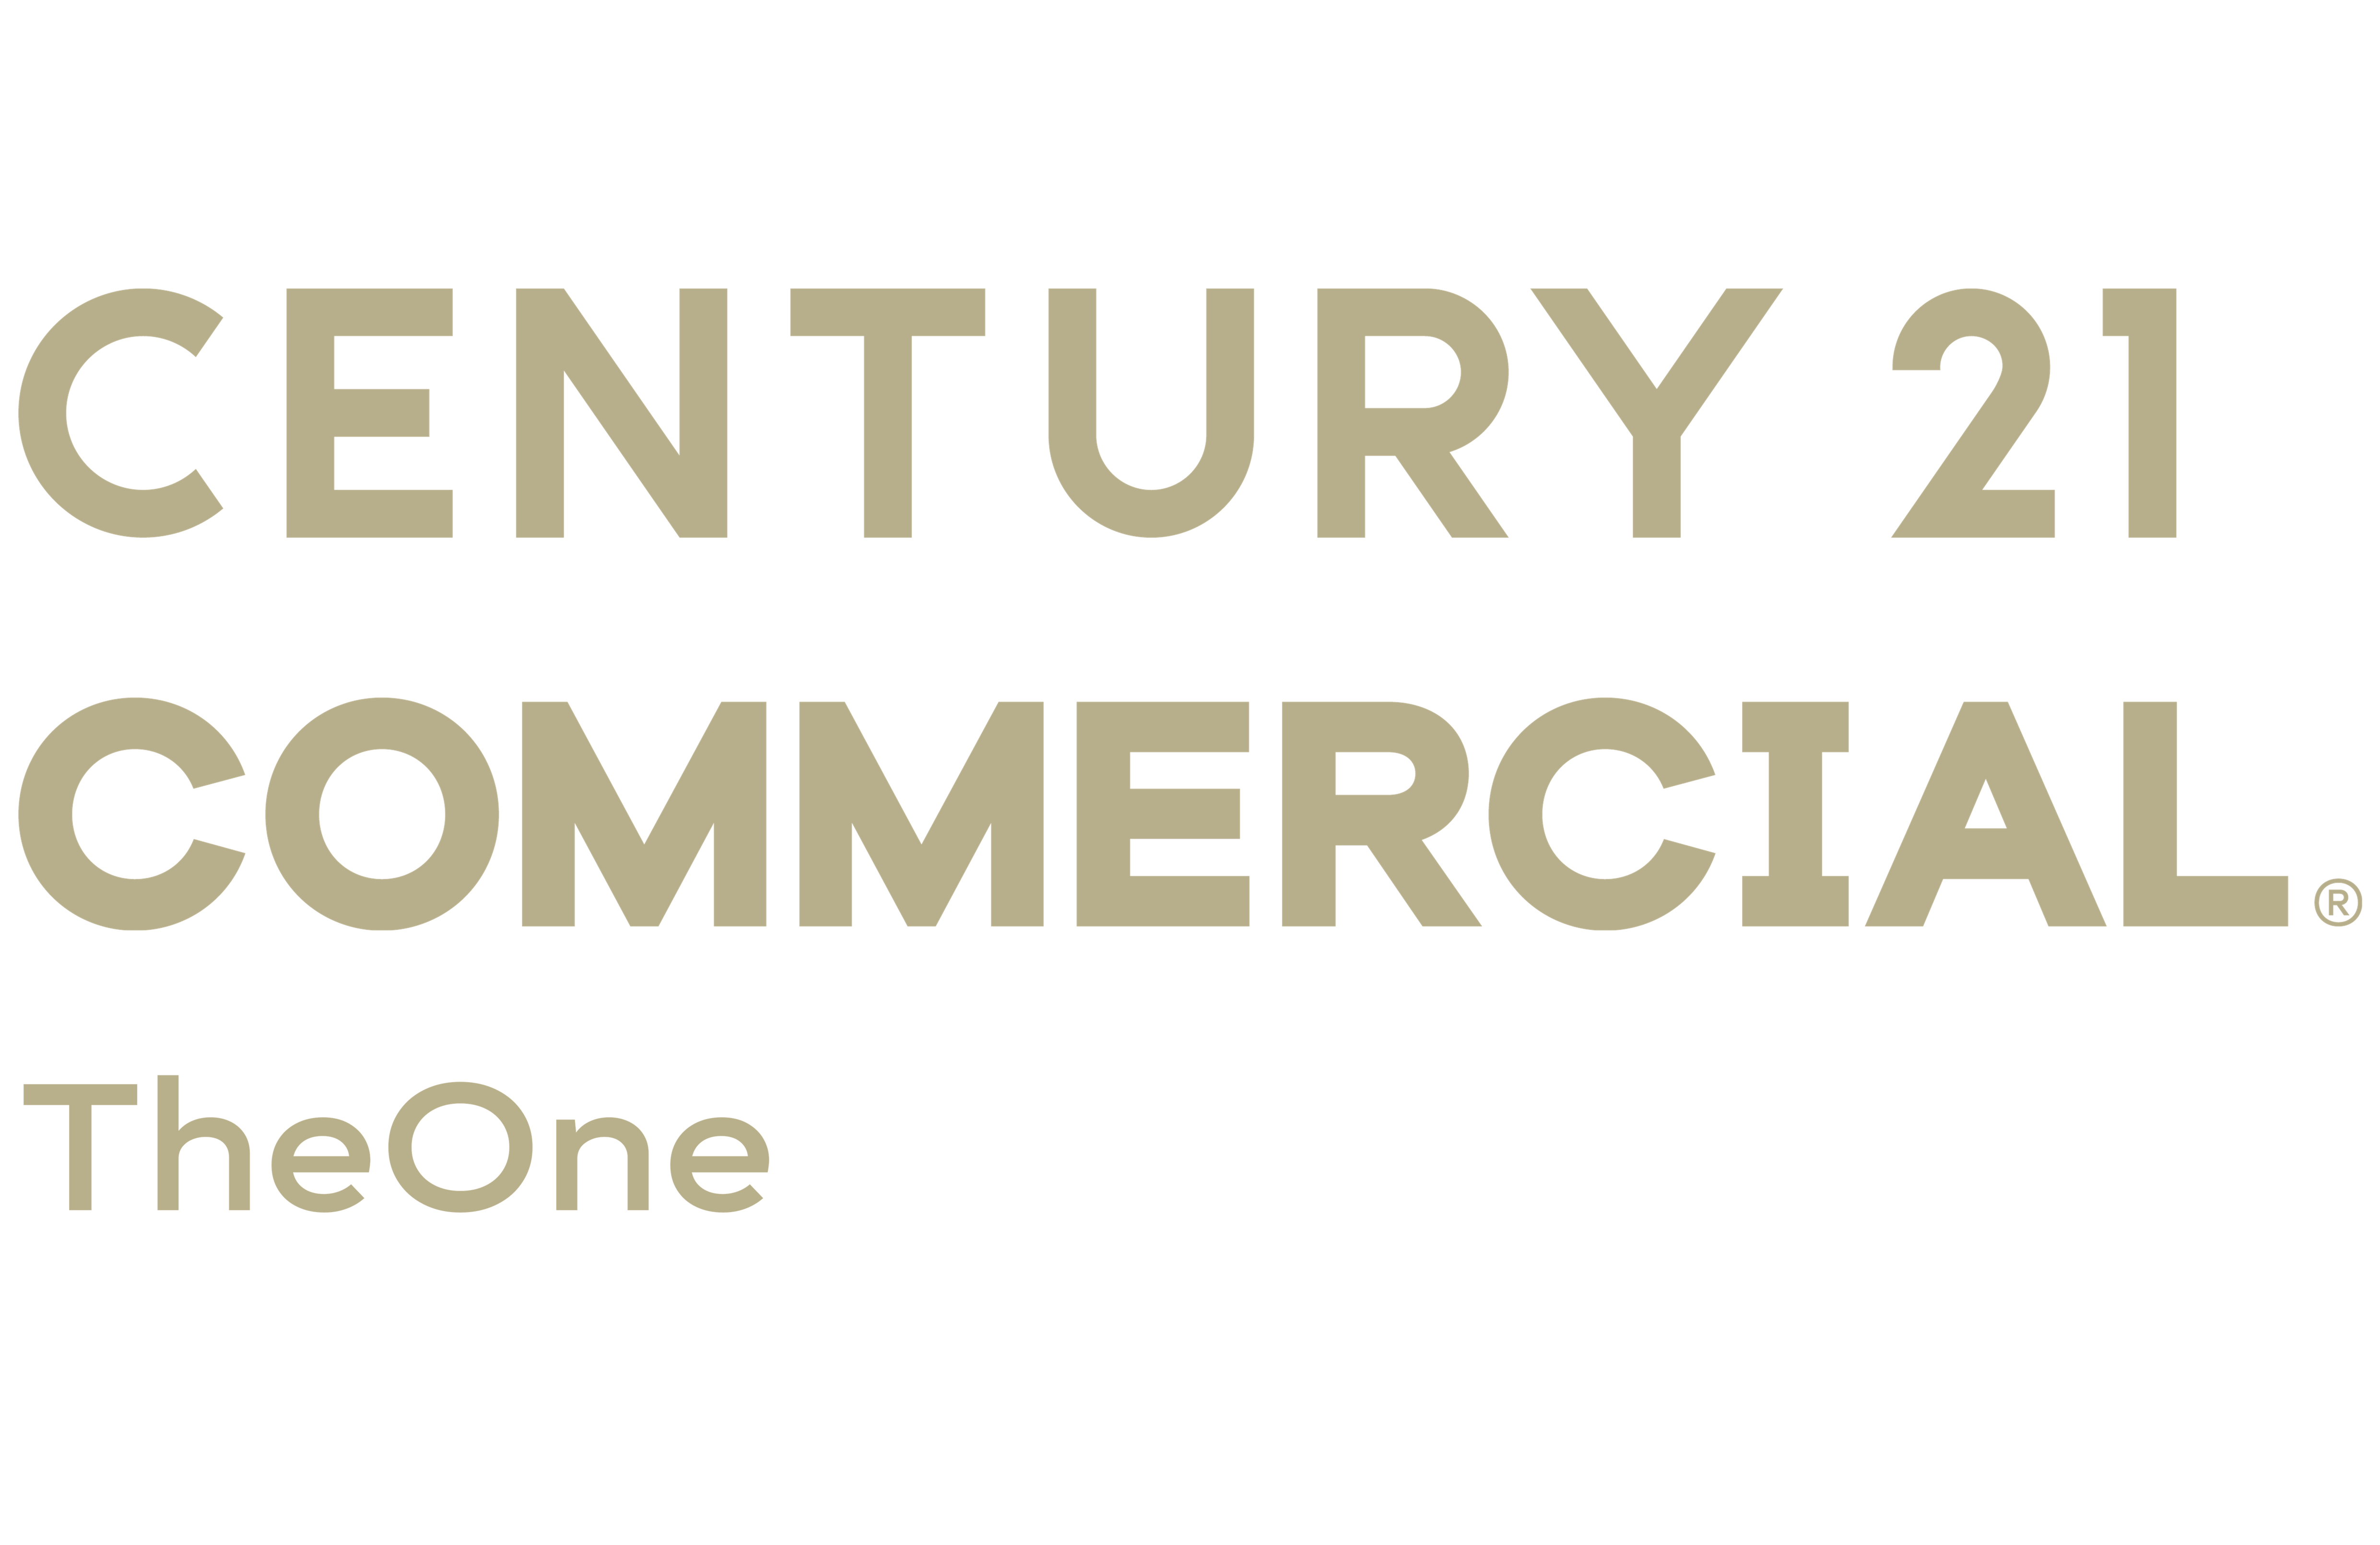 Alec Currier of CENTURY 21 TheOne logo